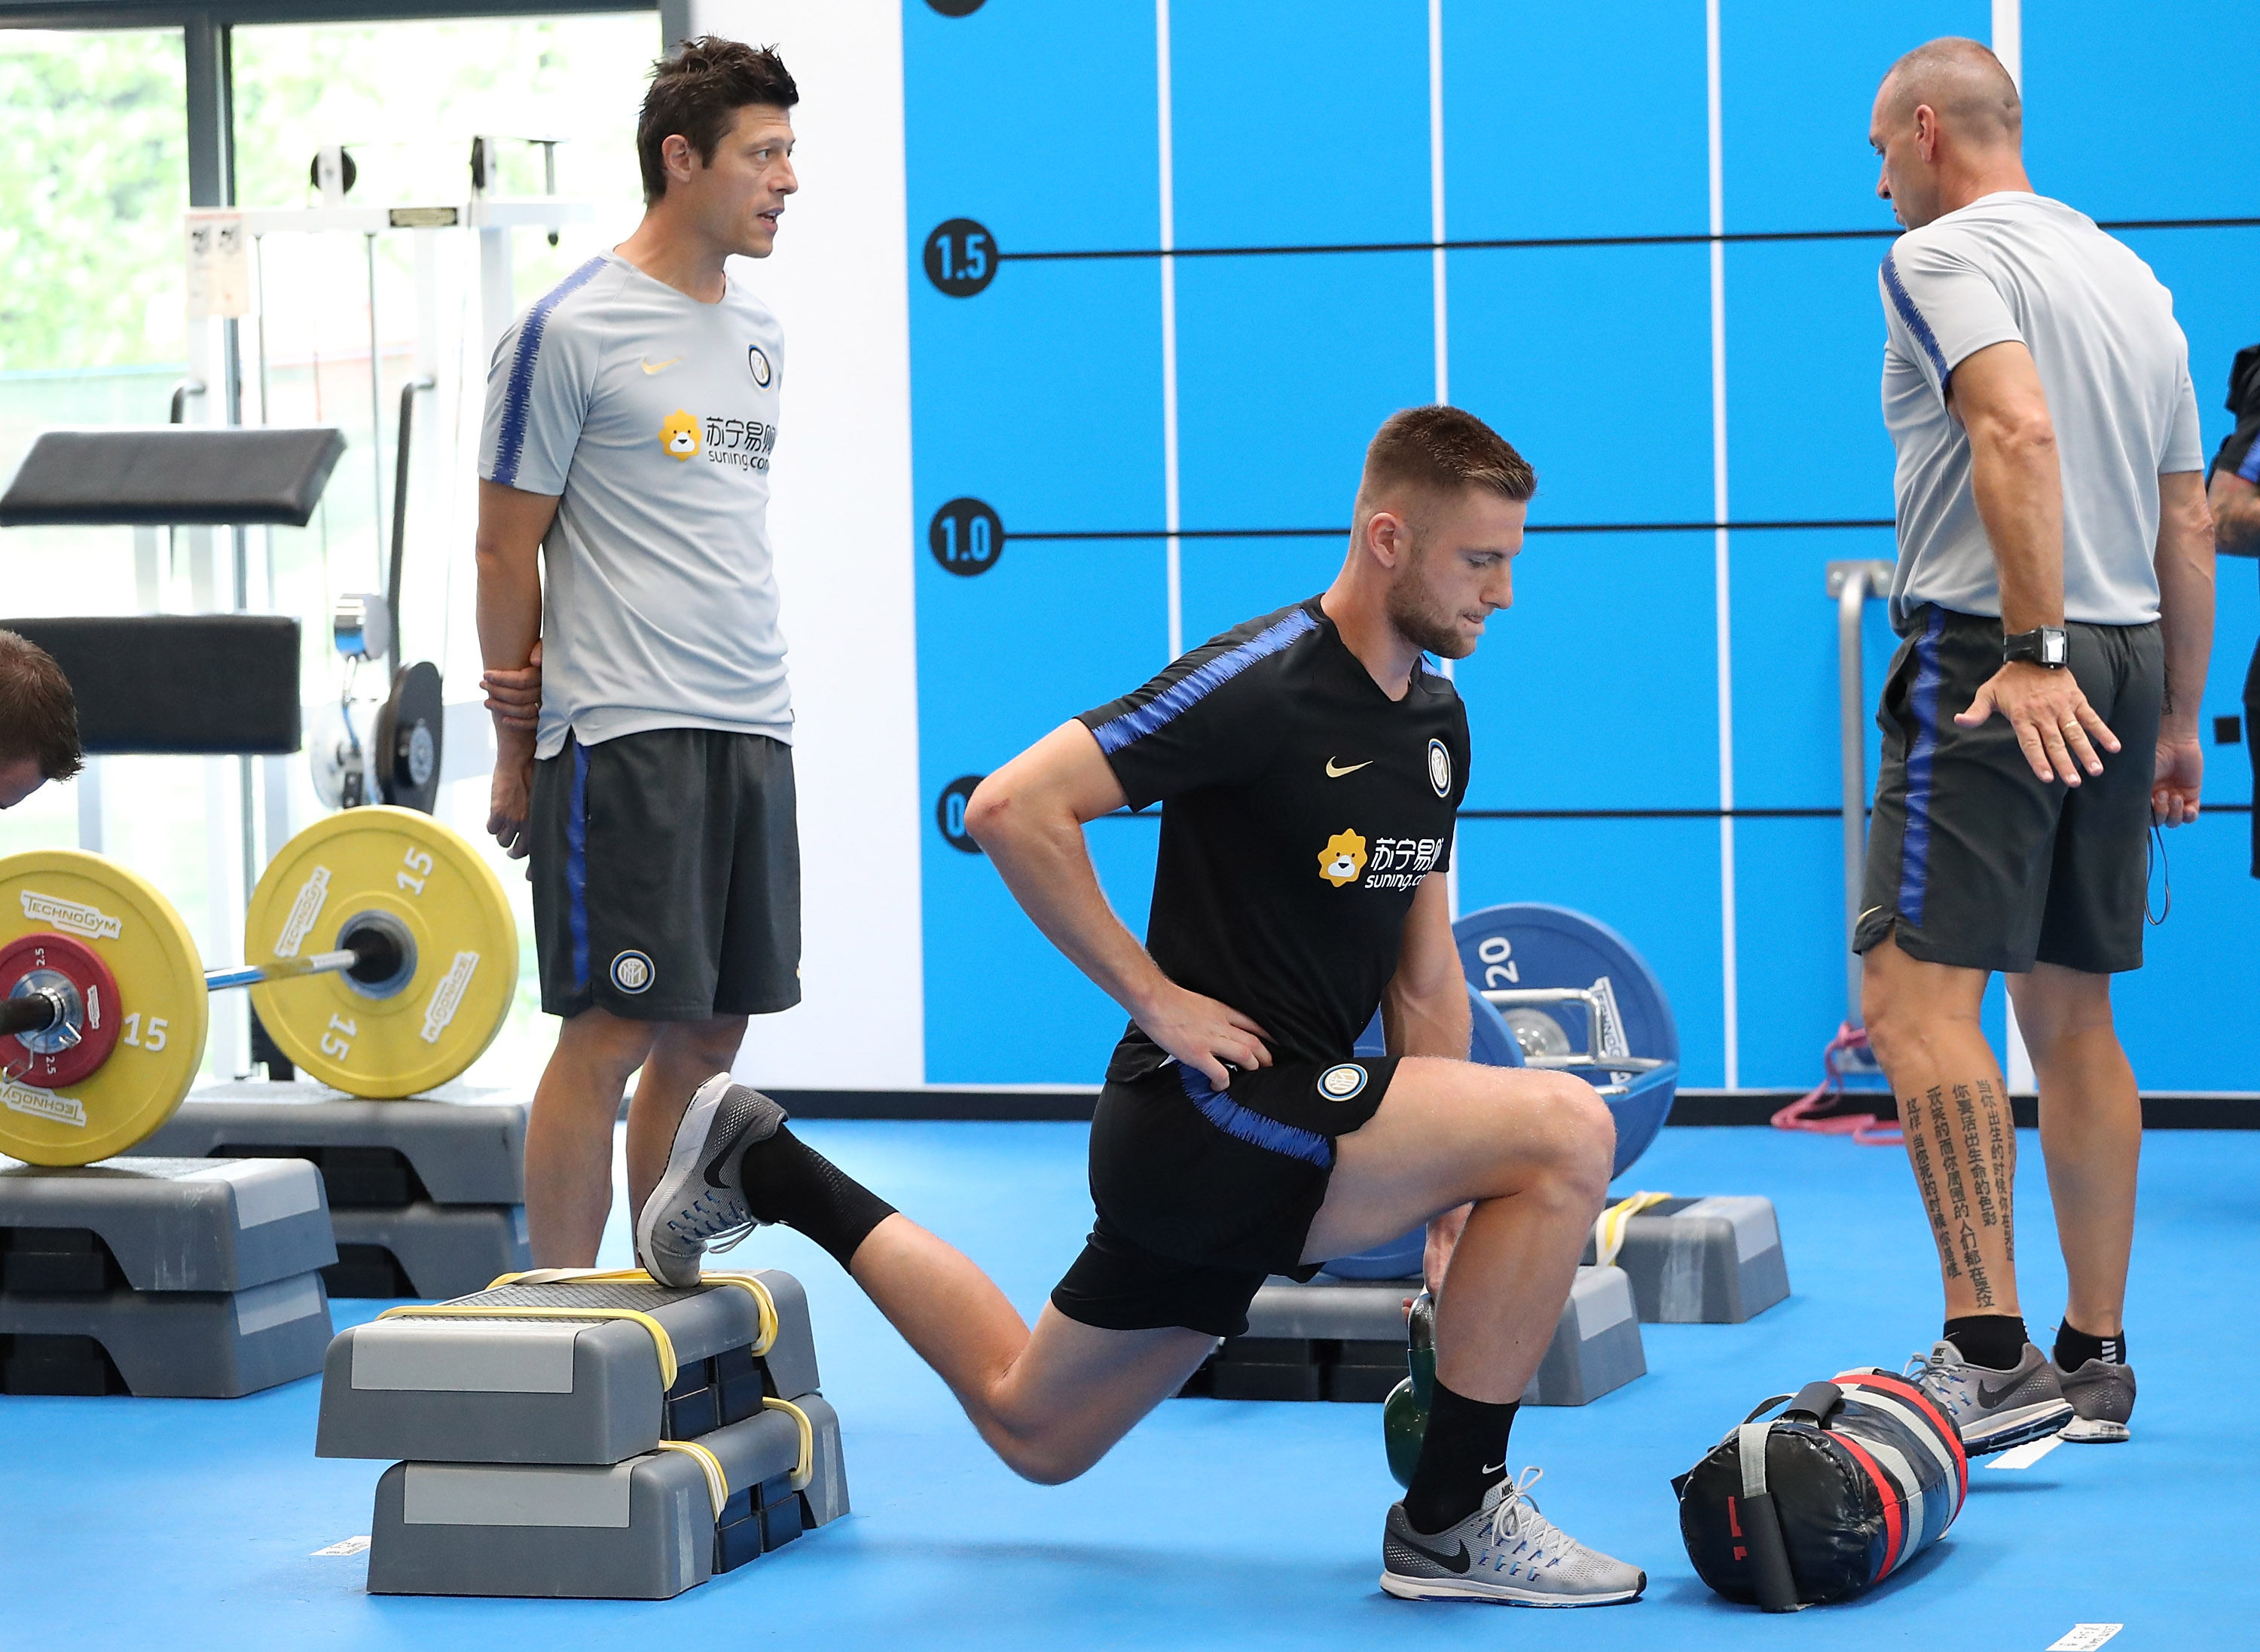 Team resume pre-season preparations at the Suning Training Centre